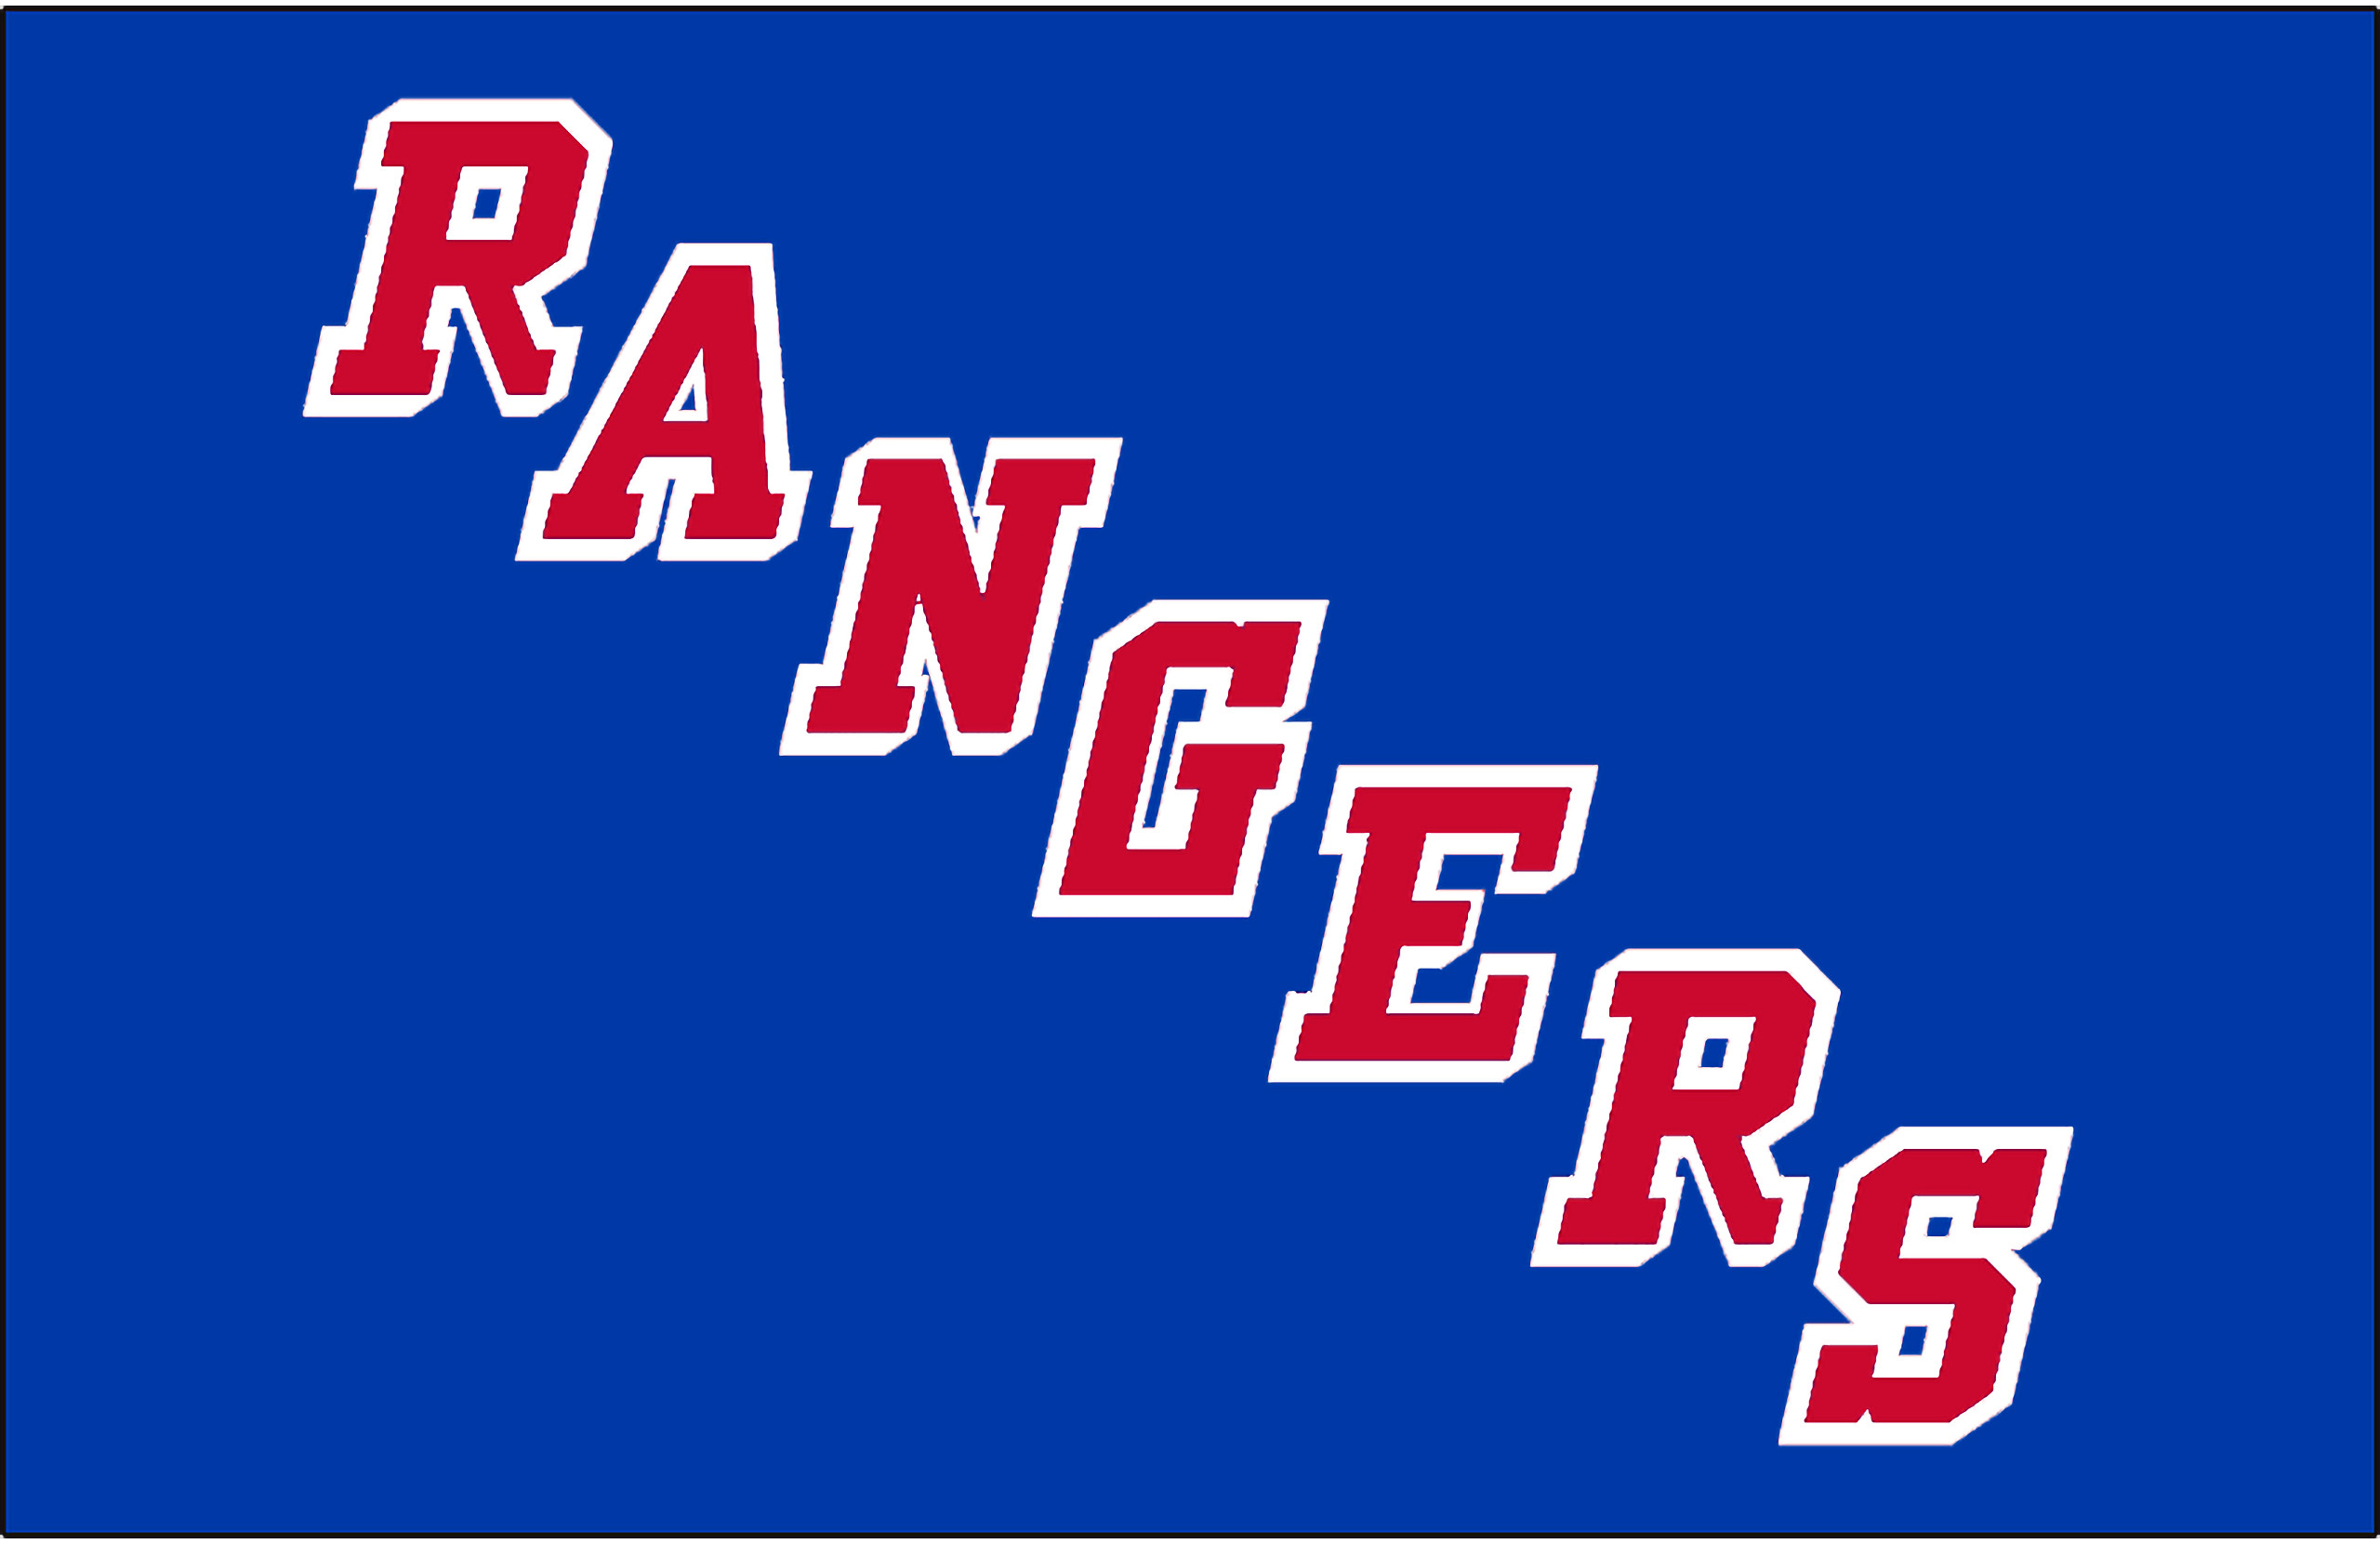 2560x1440 New York Rangers Wallpaper - Desktop - HD, Minimal, 1440p